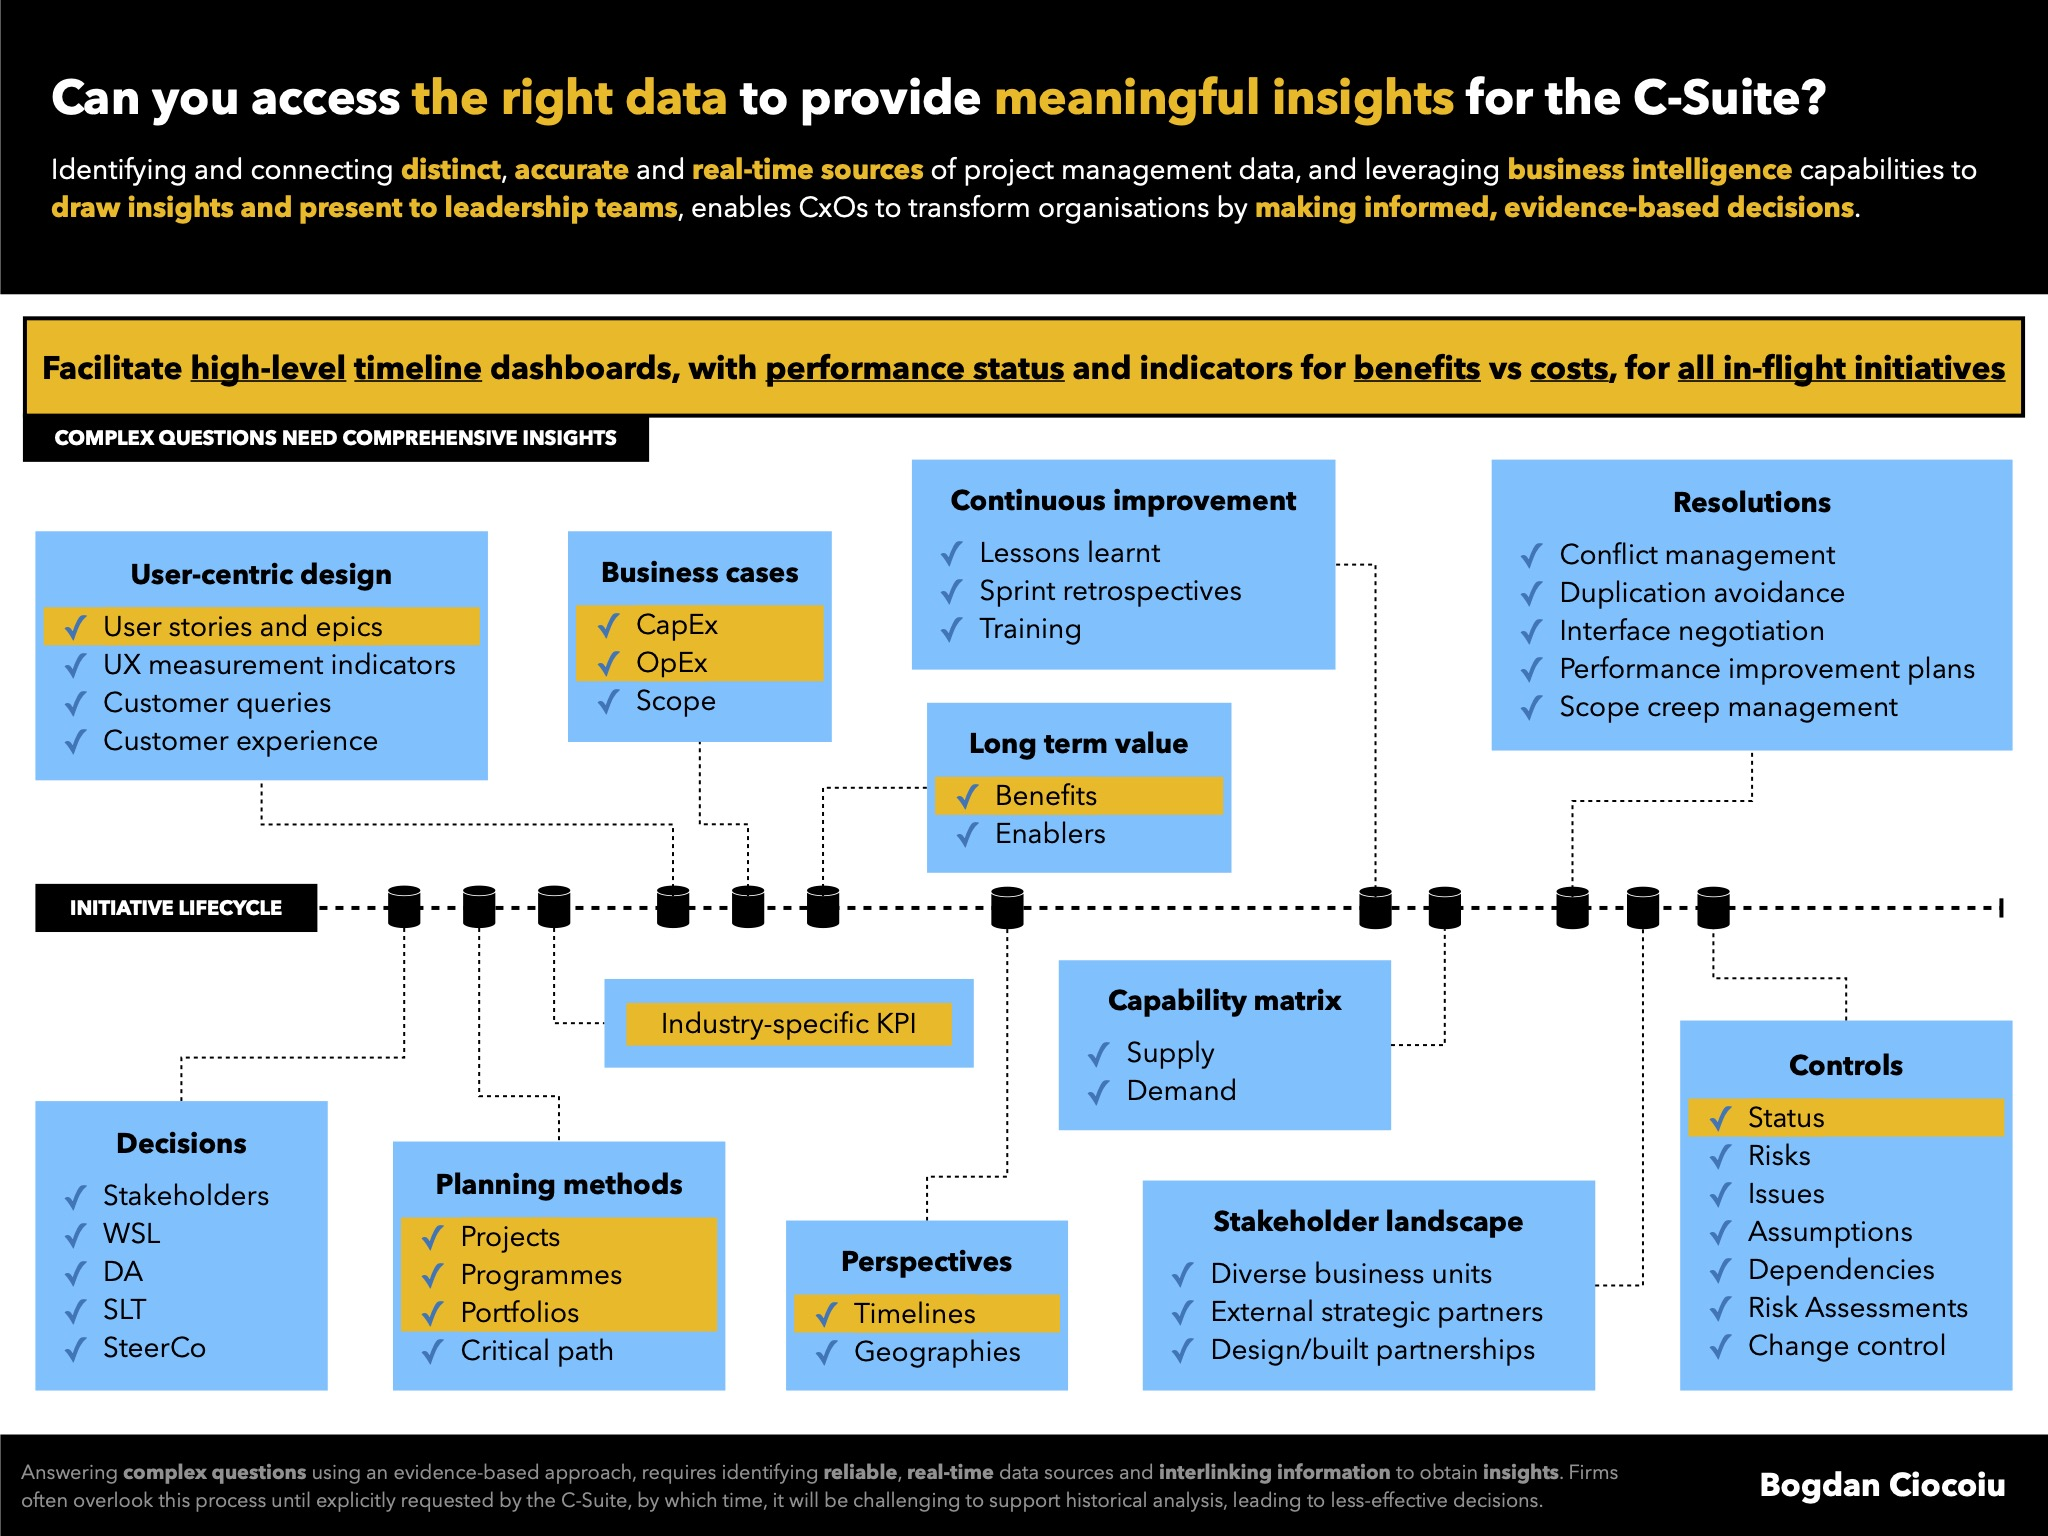 Can you access the right data to provide meaningful insights for the C-Suite?